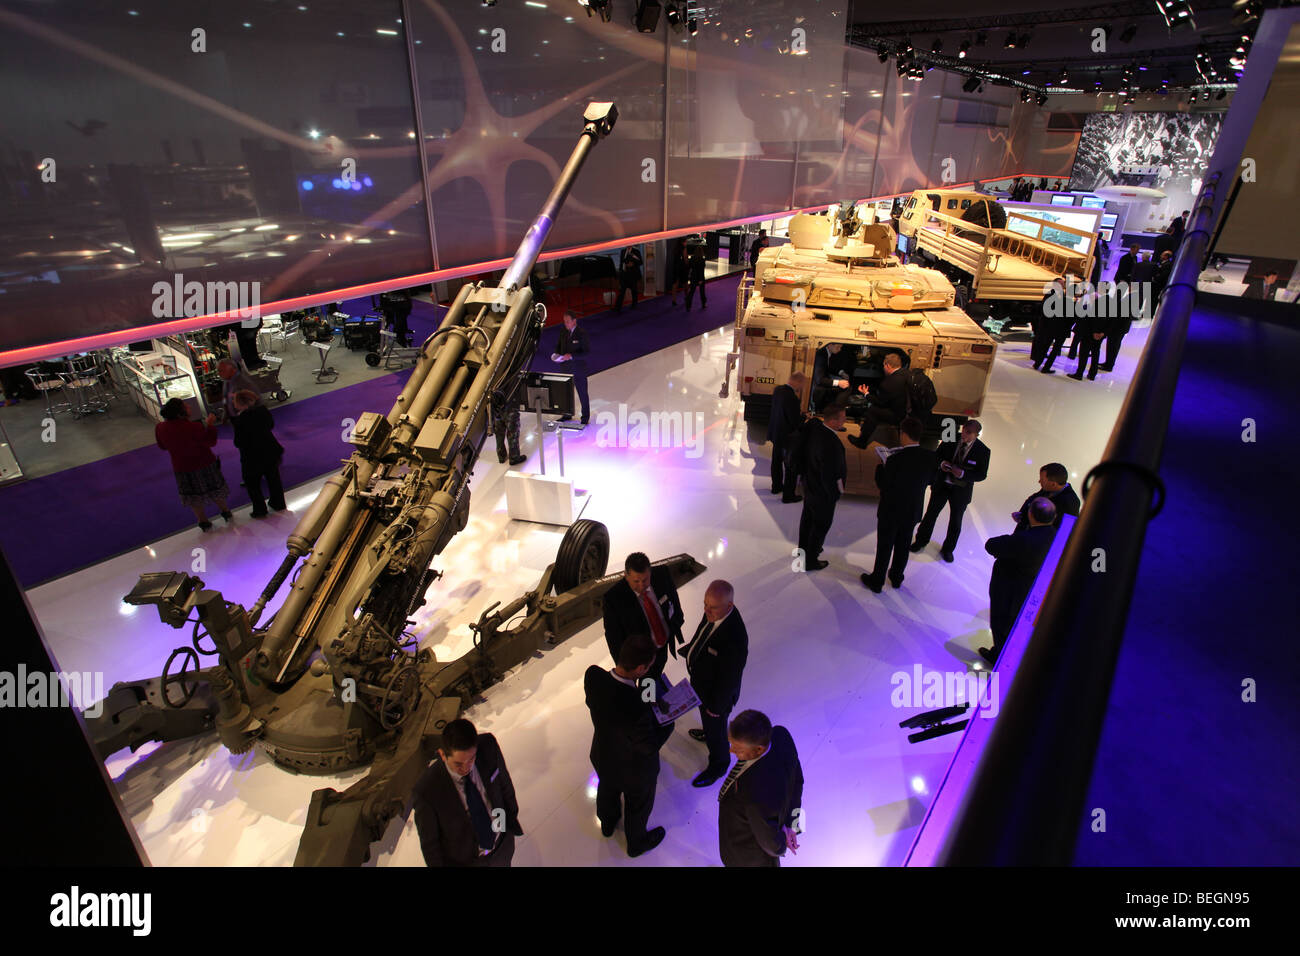 military equipment on display at an international arms fair Stock Photo